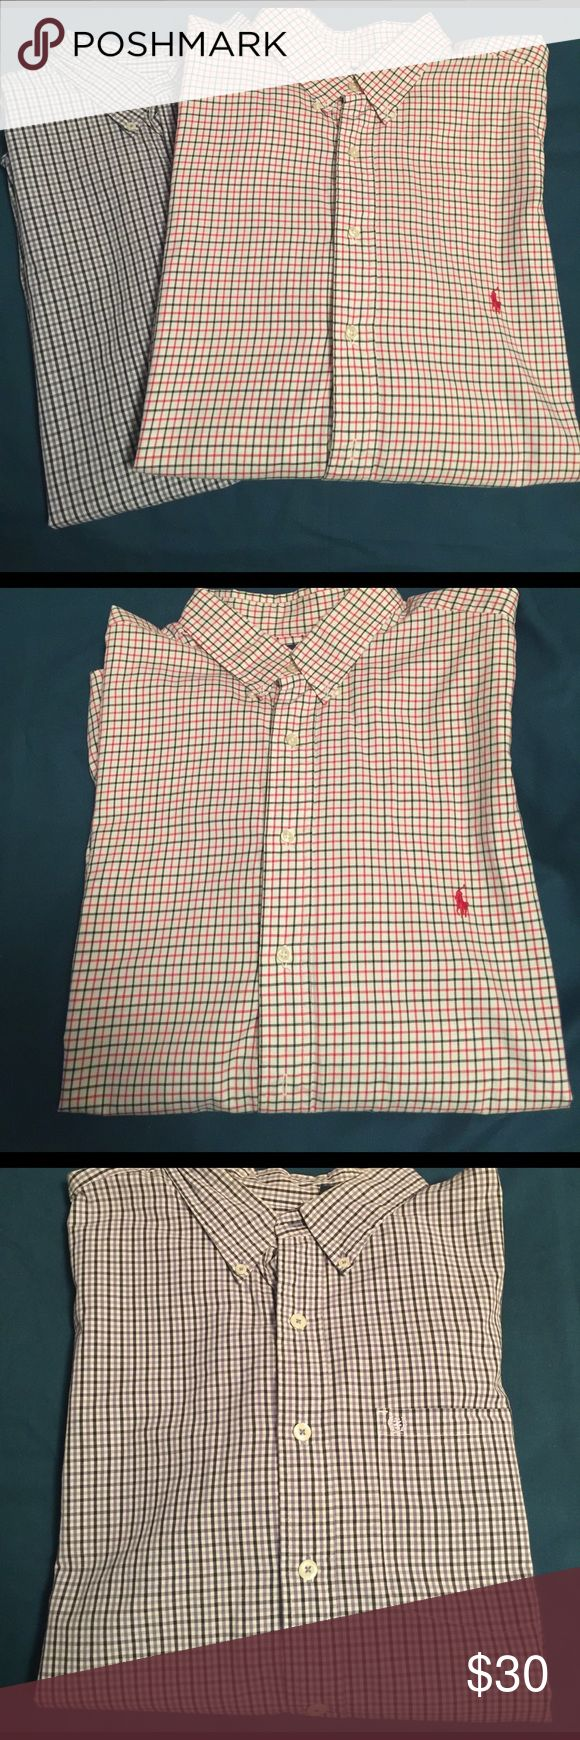 Mens shirt bundle 2 beautiful Mens long sleeved button down shirts. Red and blue Ralph Lauren Polo is size  2XB  and the purple and navy Izod is a size 2XLT. Both shirts are in great condition Polo by Ralph Lauren Shirts Casual Button Down Shirts